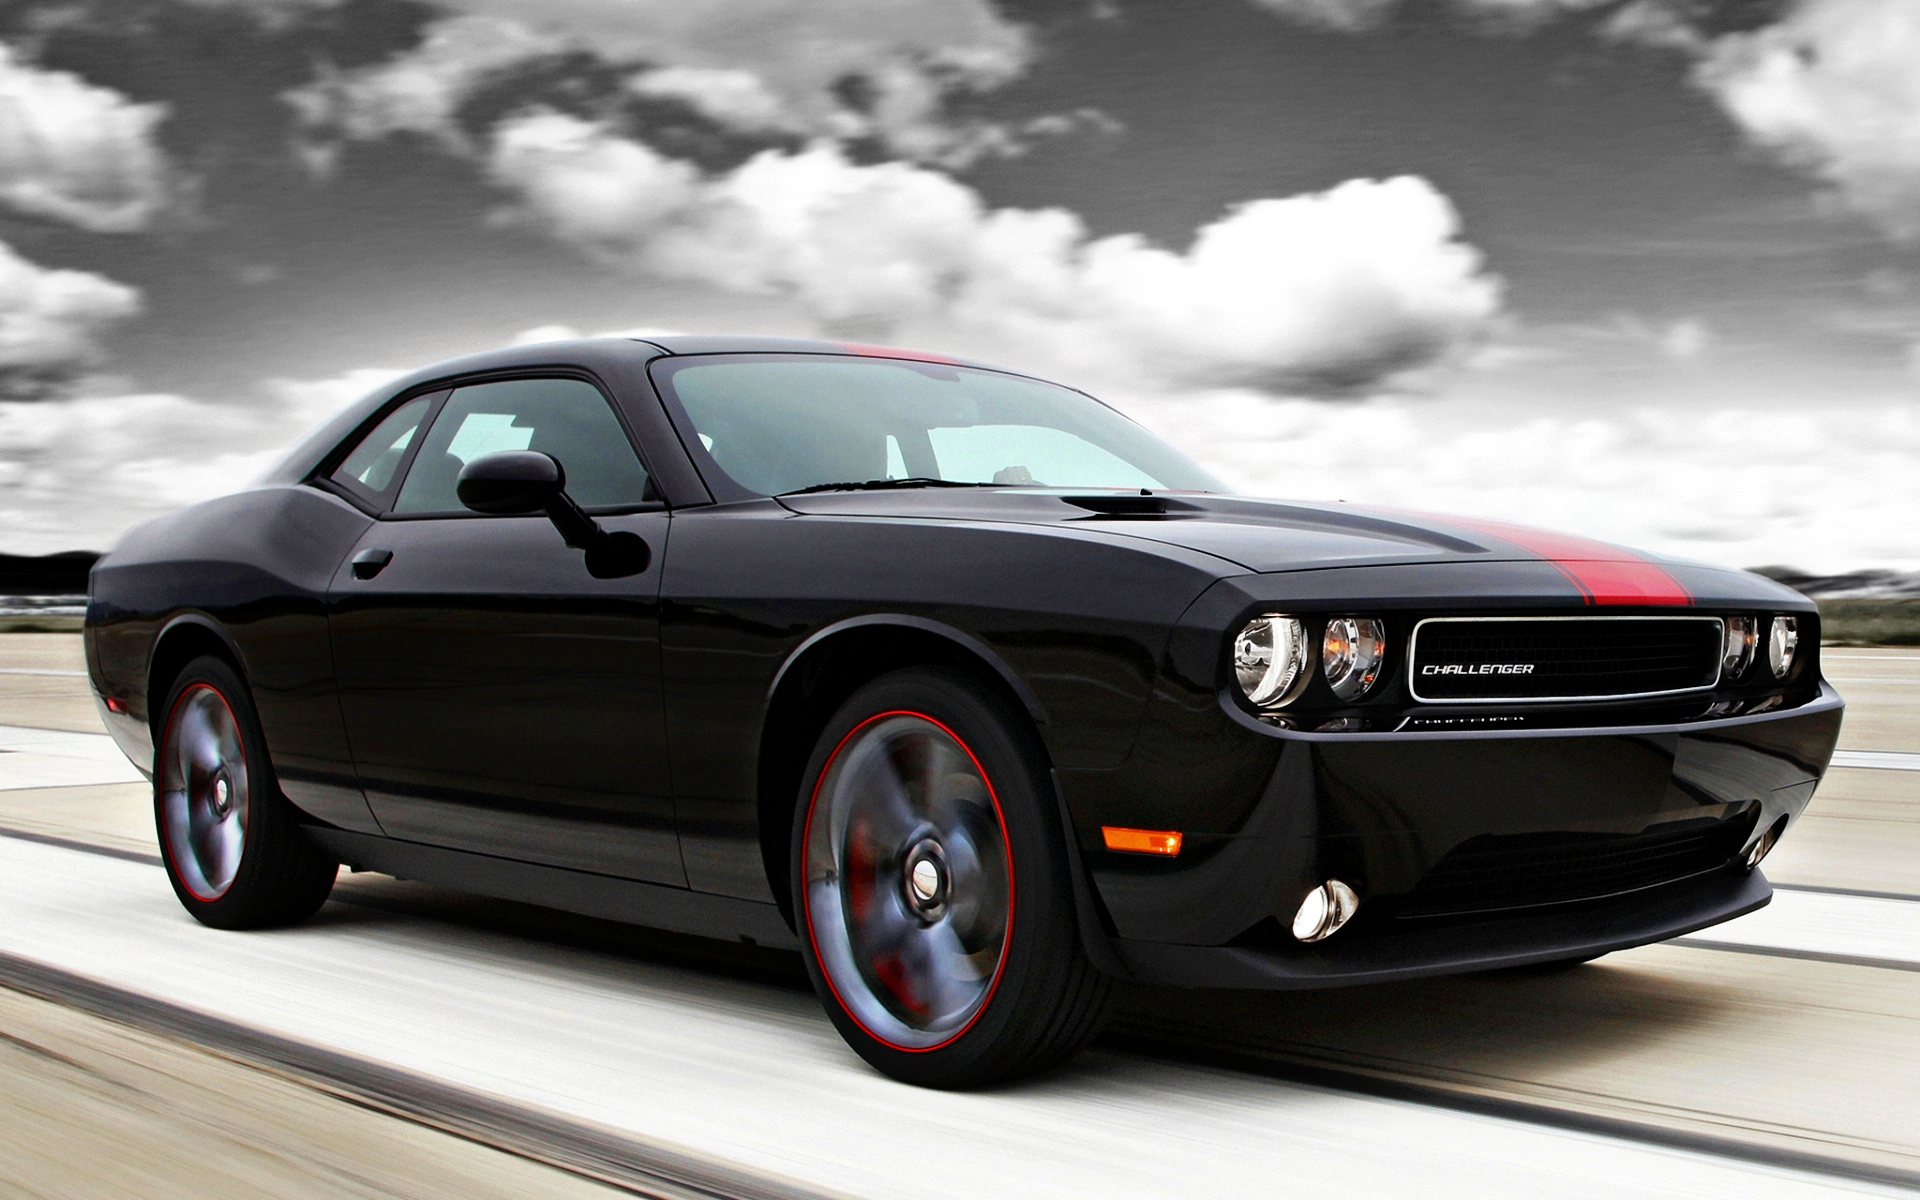 Free Download Dodge Challenger Backgrounds Wallpaper Wiki